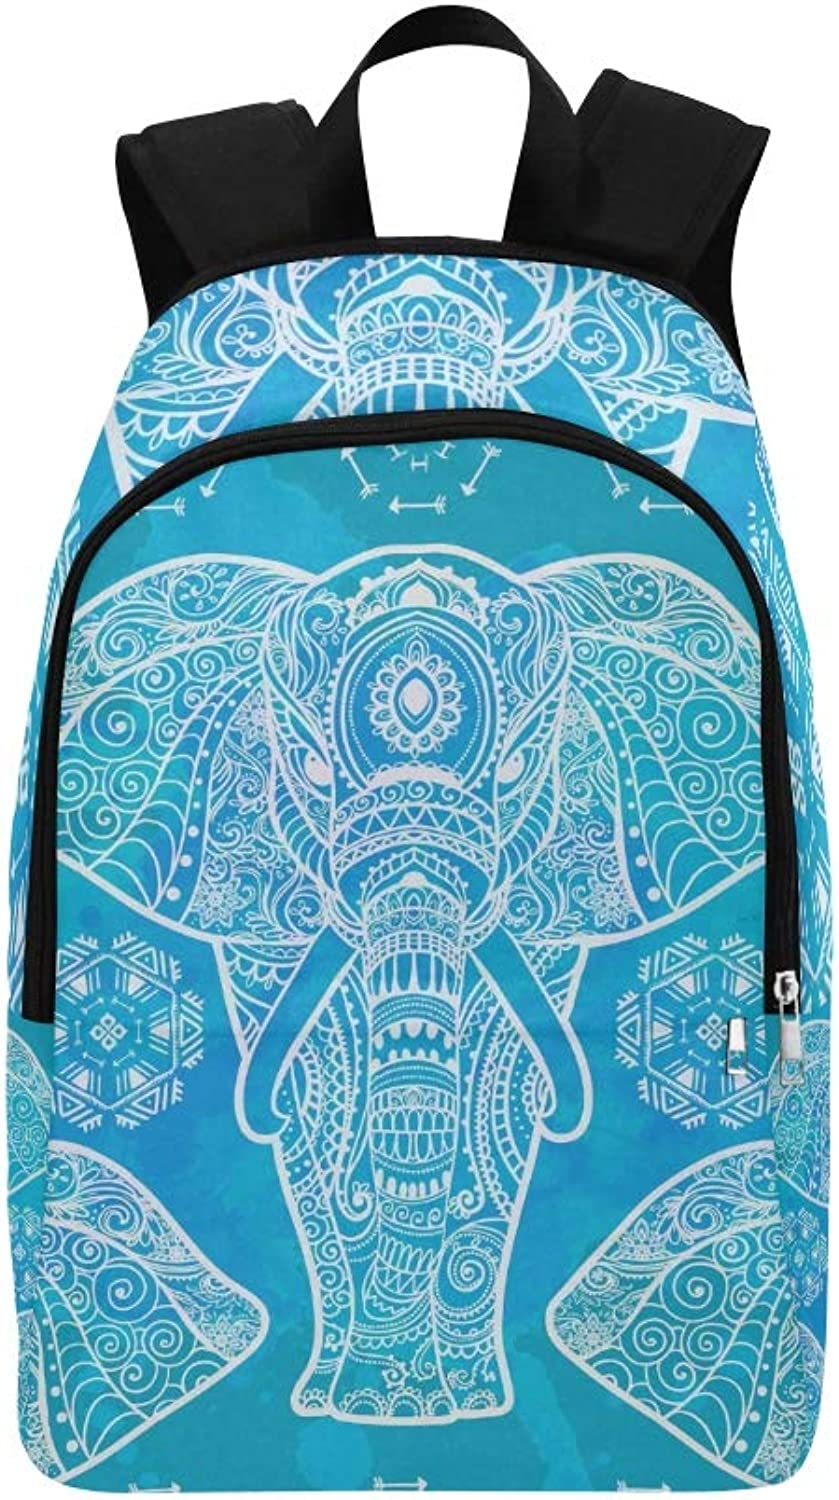 Card Elephant Animal Made Casual Daypack Travel Bag College School Backpack for Mens and Women